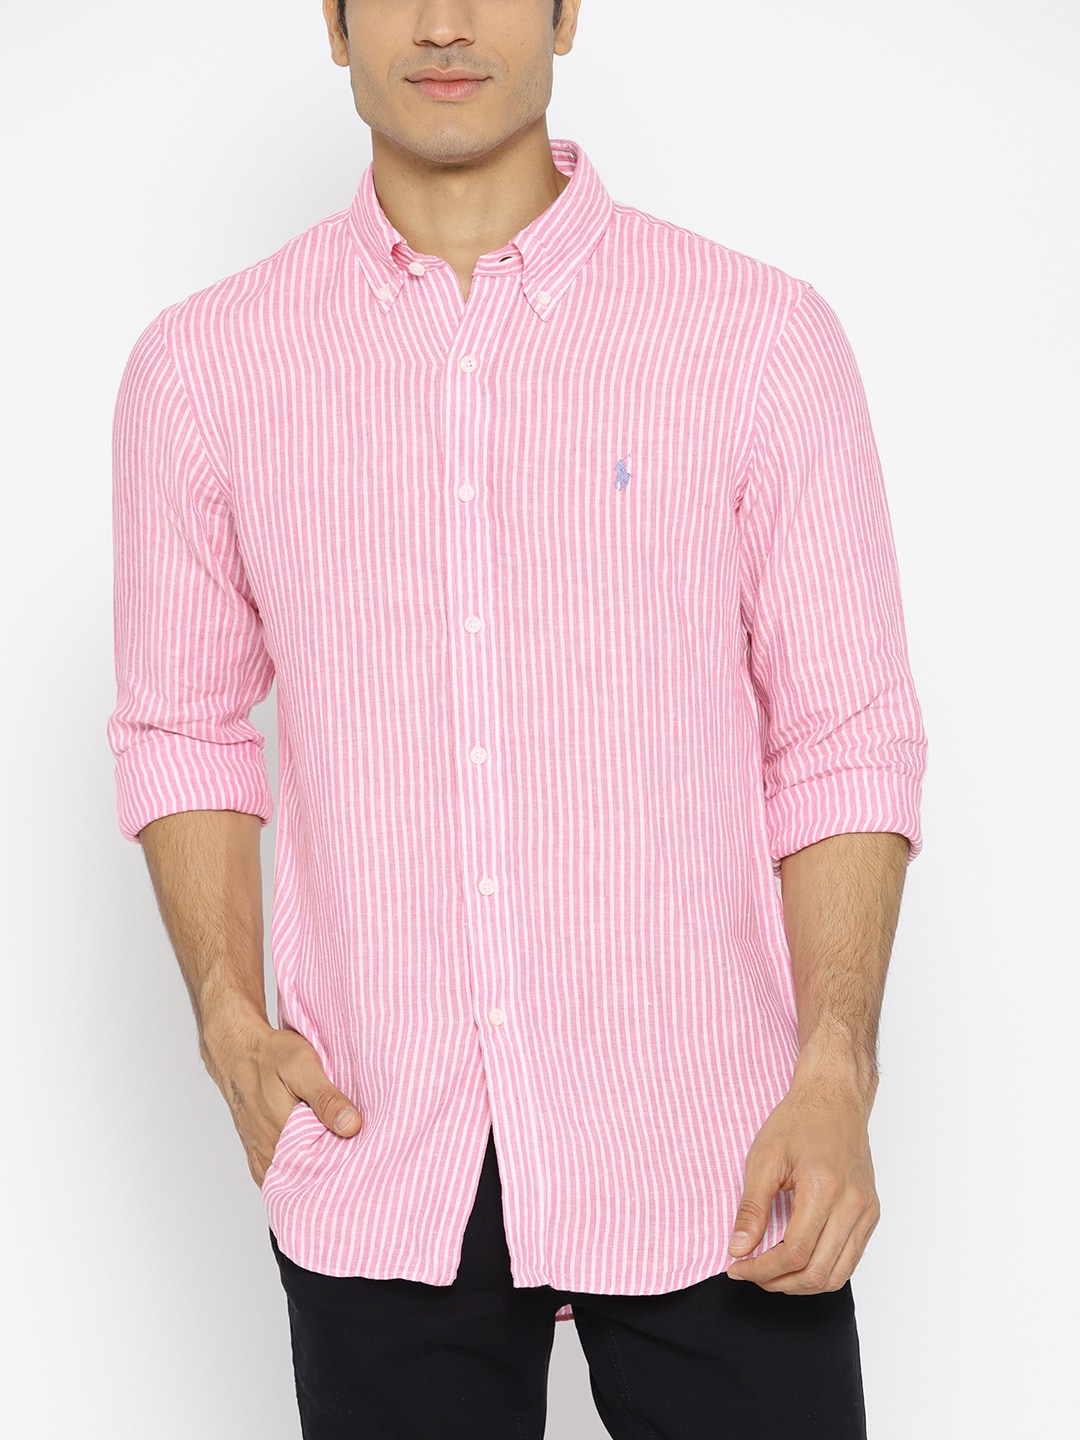 b2d4bf4bf6c0f Pink For Kid Polo - Buy Pink For Kid Polo online in India